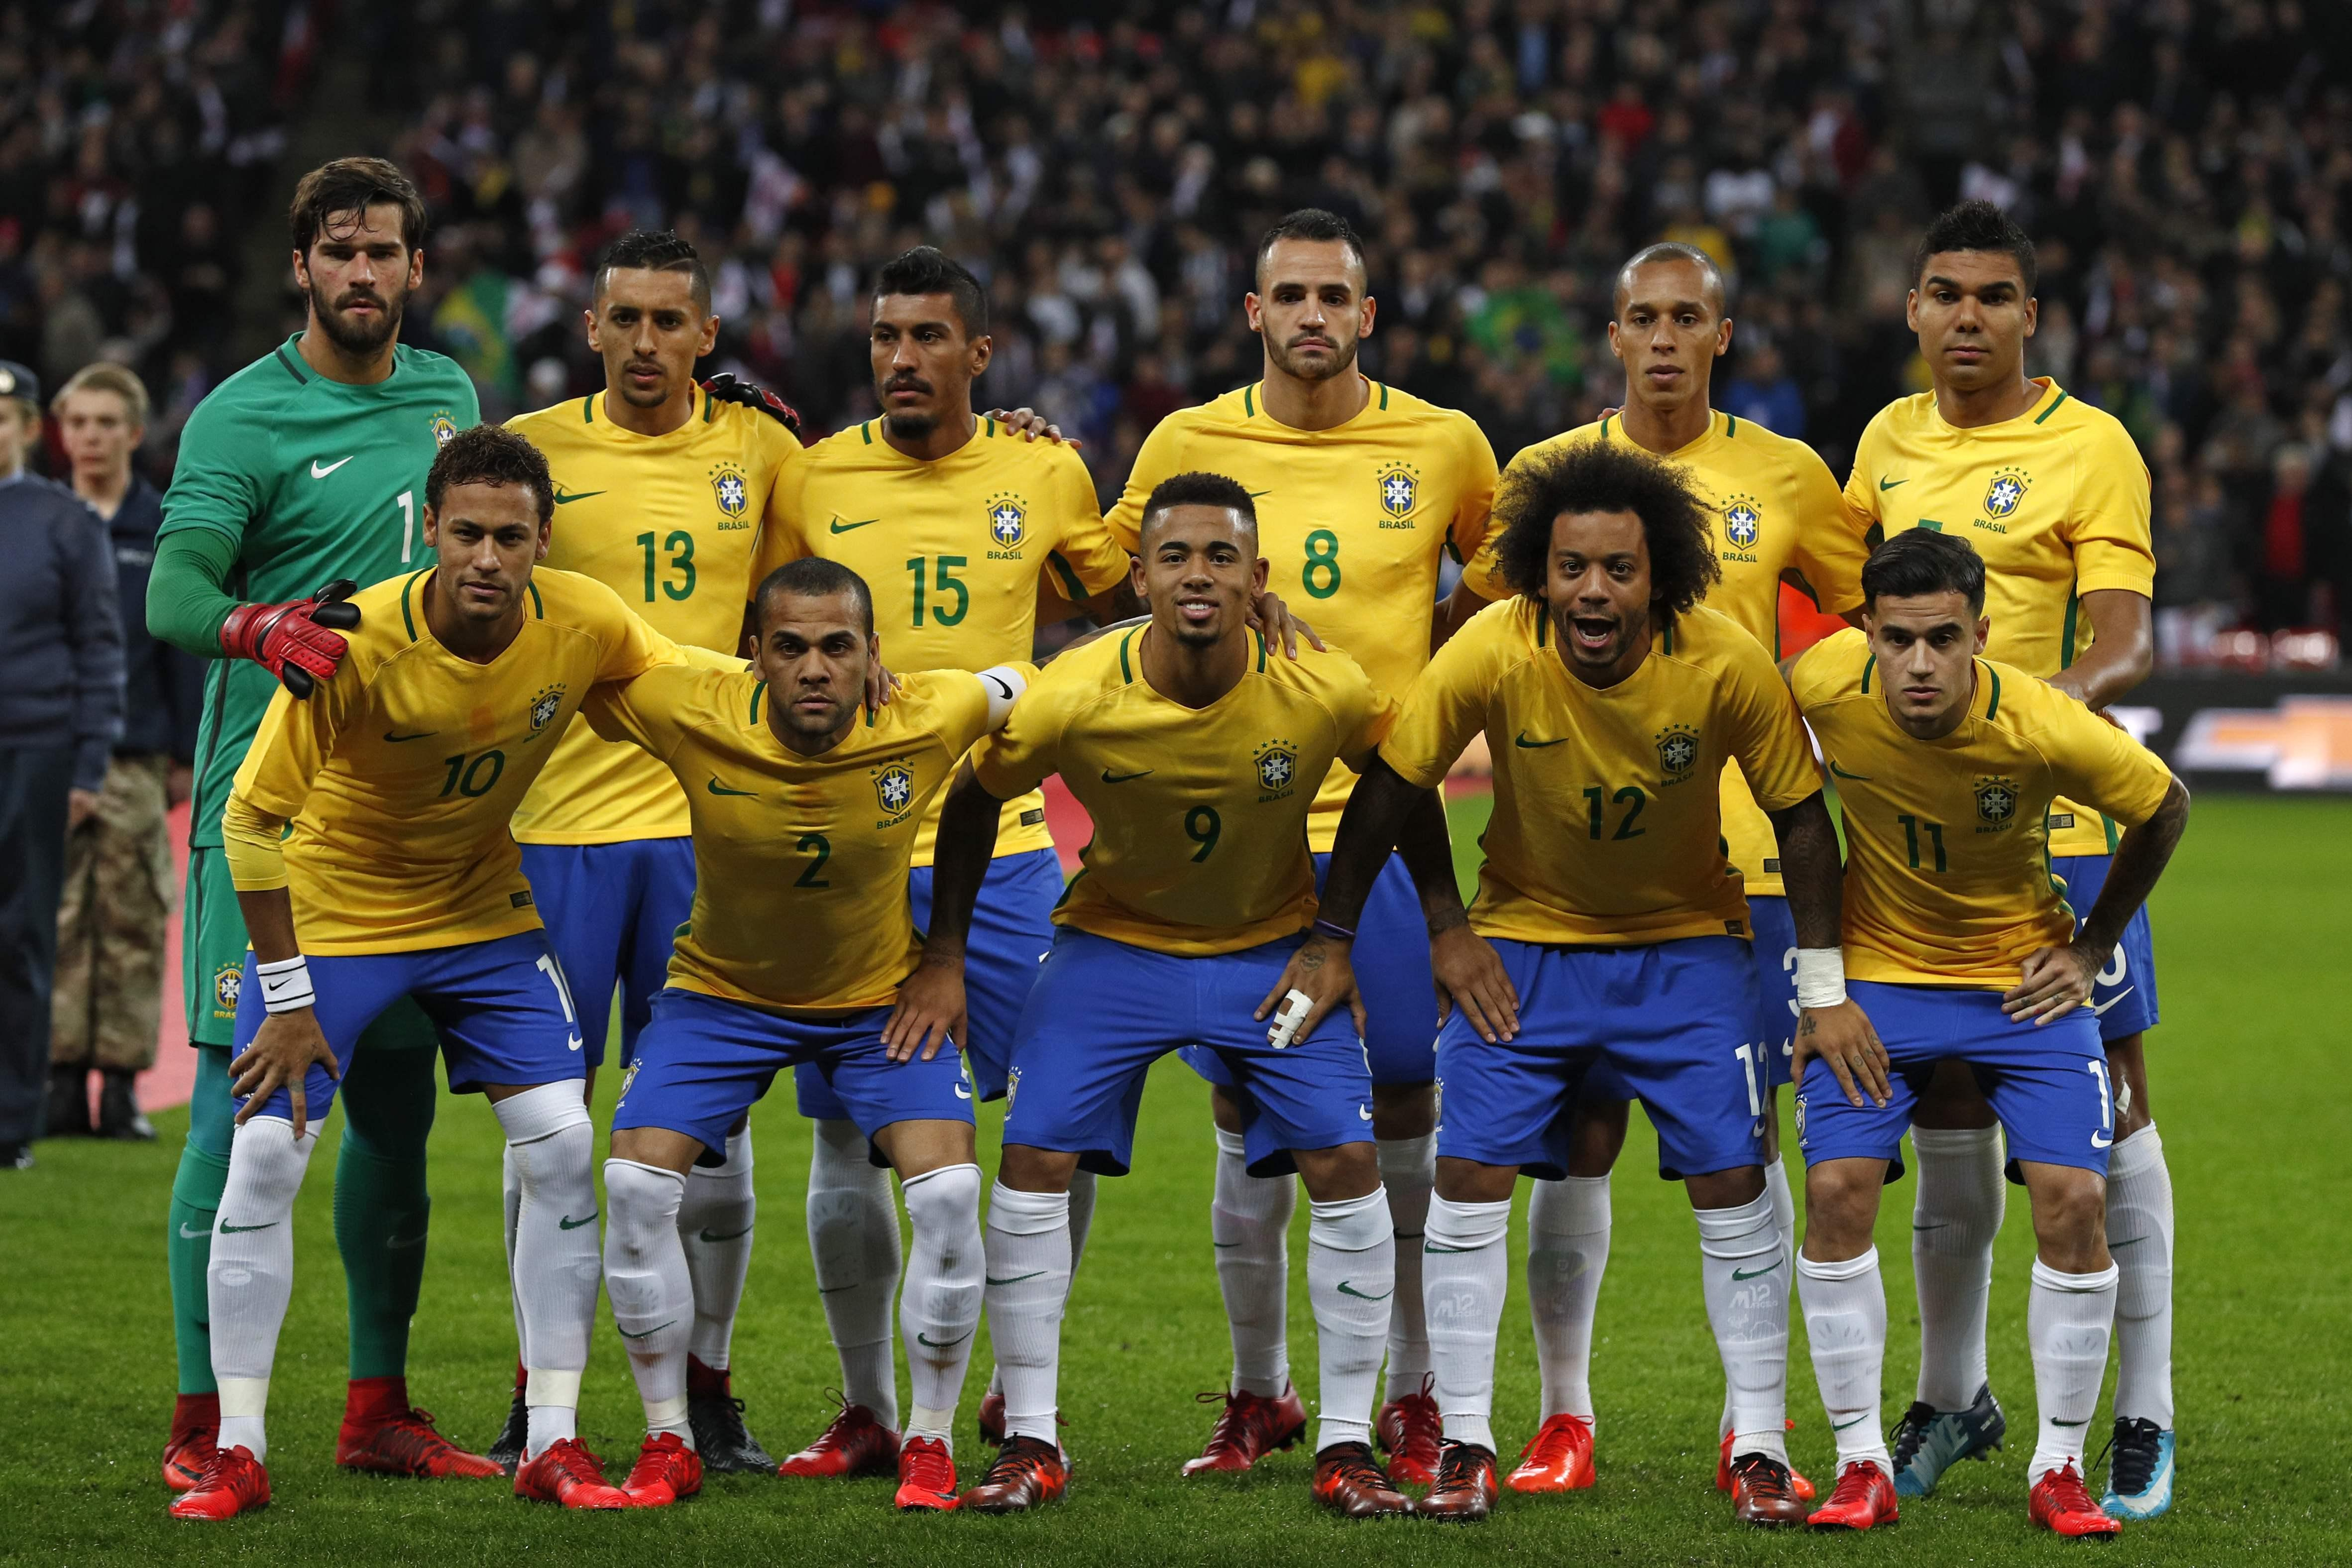 Brazil boss Tite has named his starting XI for this summer's World Cup - with these guys all in